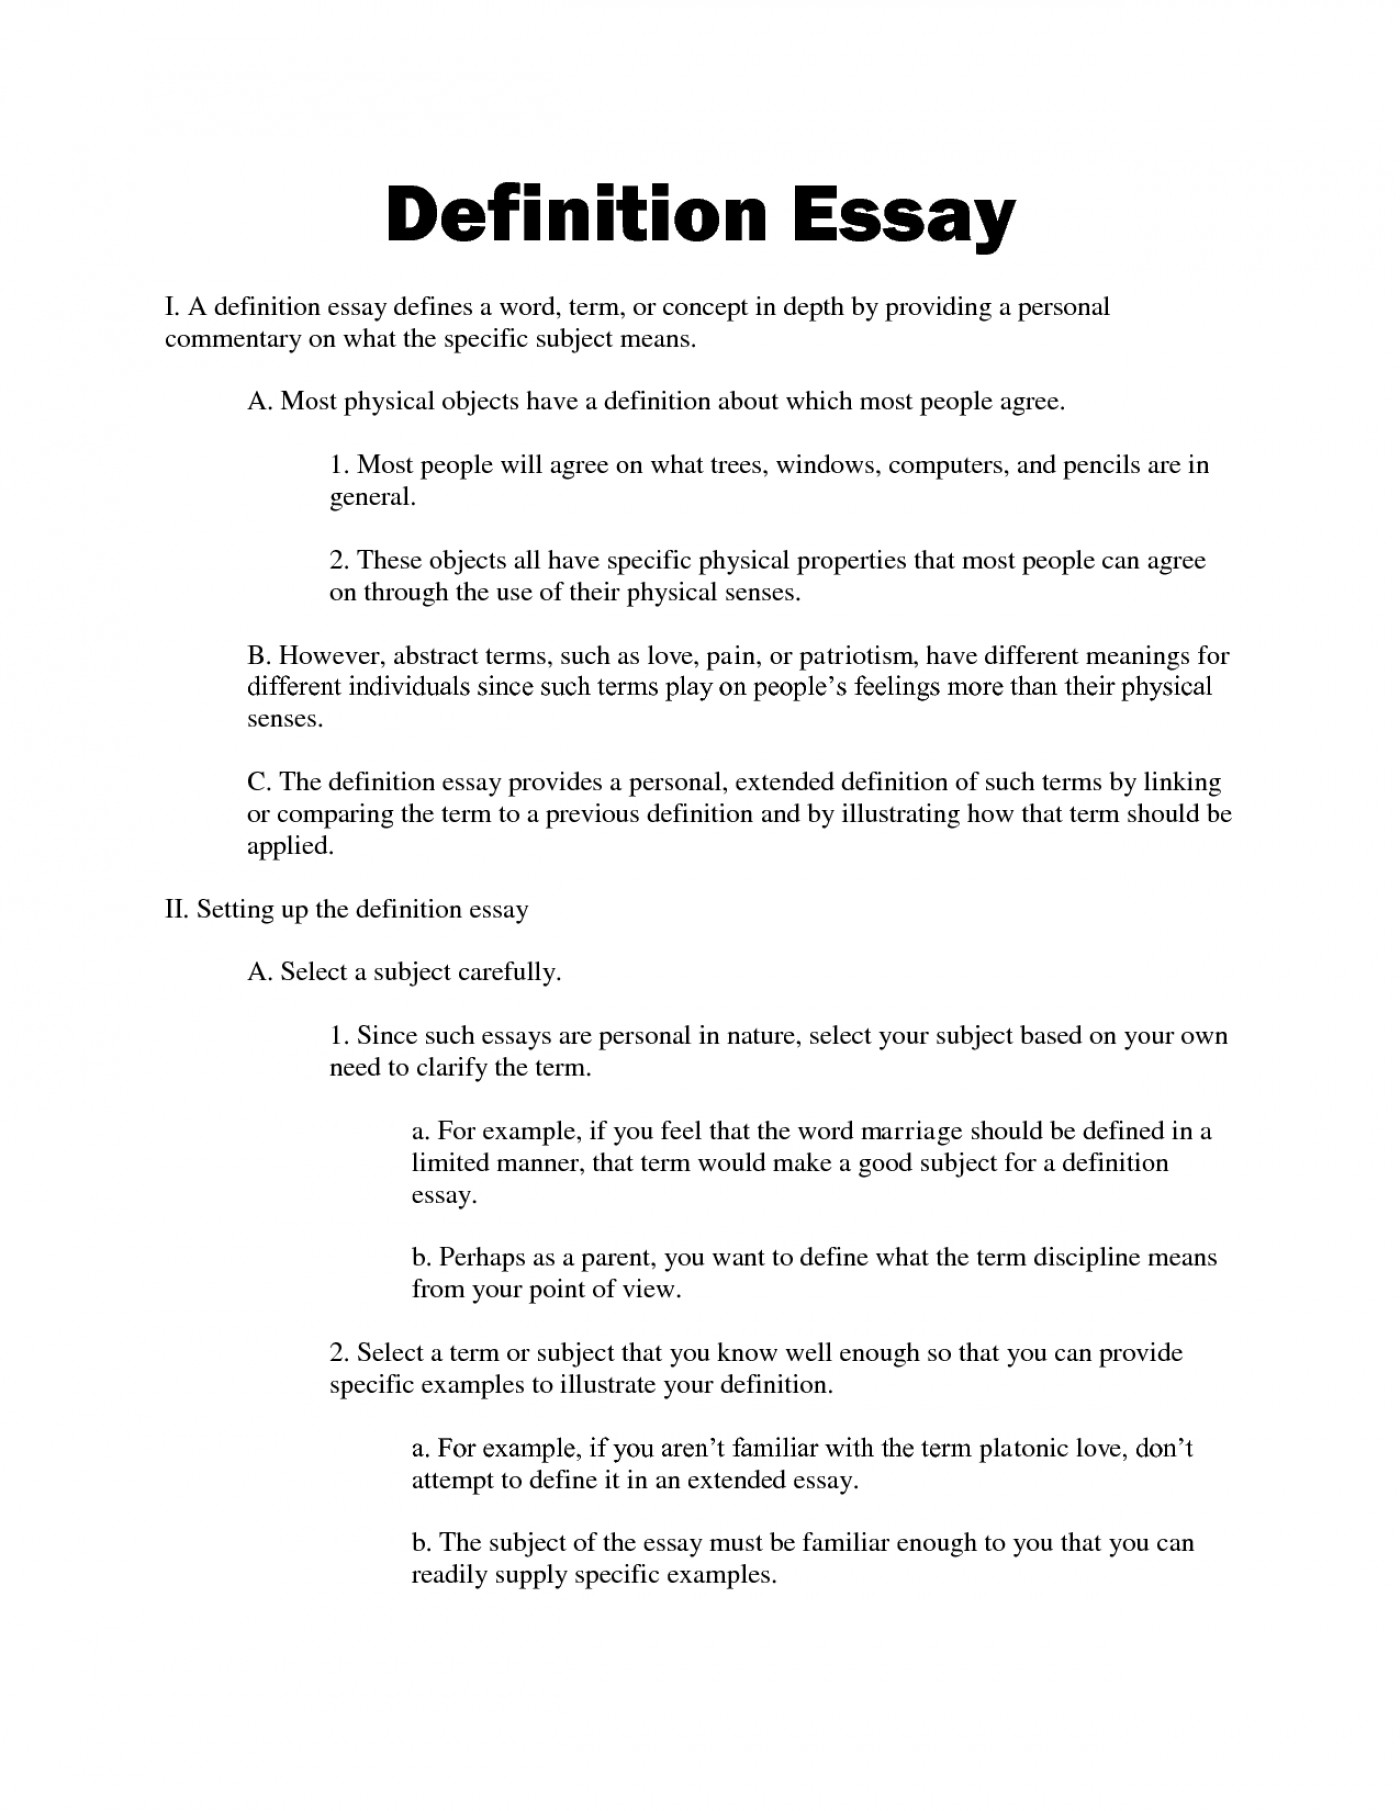 002 Definition Essays Gj60o8orim Surprising Essay Examples Family Heroism Pdf 1400